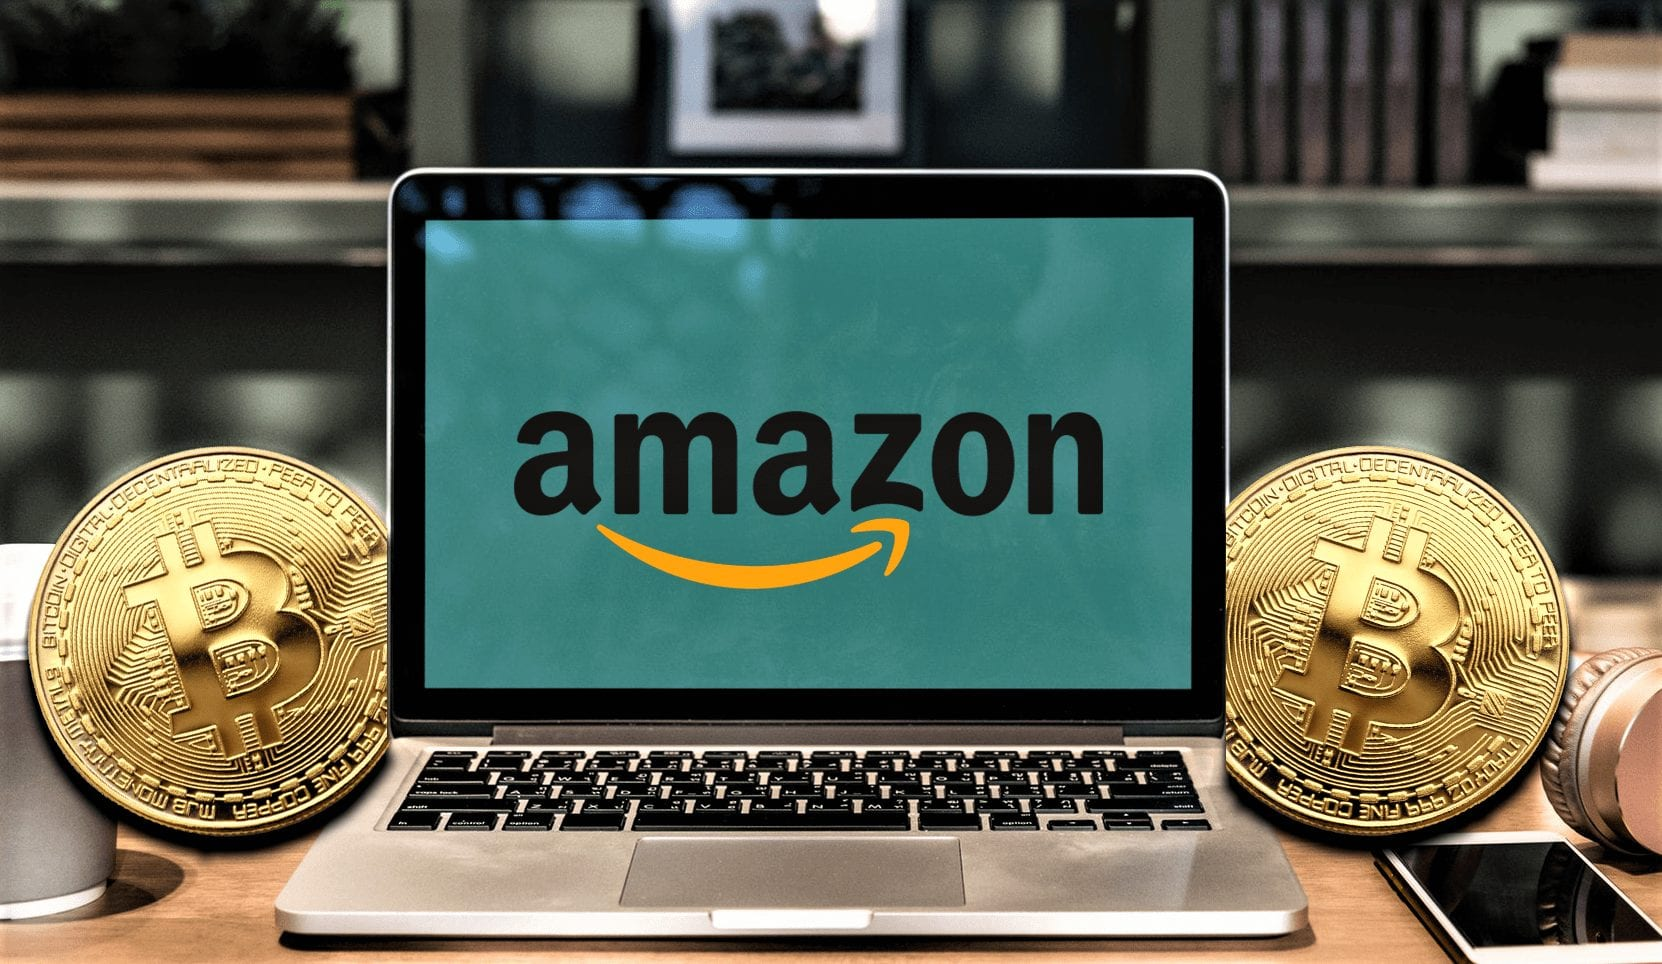 Bitcoin Integration on the Cards as Amazon Finally Given Go Ahead - Amazon To Finally Enter The World Of Crypto? Bitcoin (BTC) Integration And Crypto Mass Adoption, In The Cards